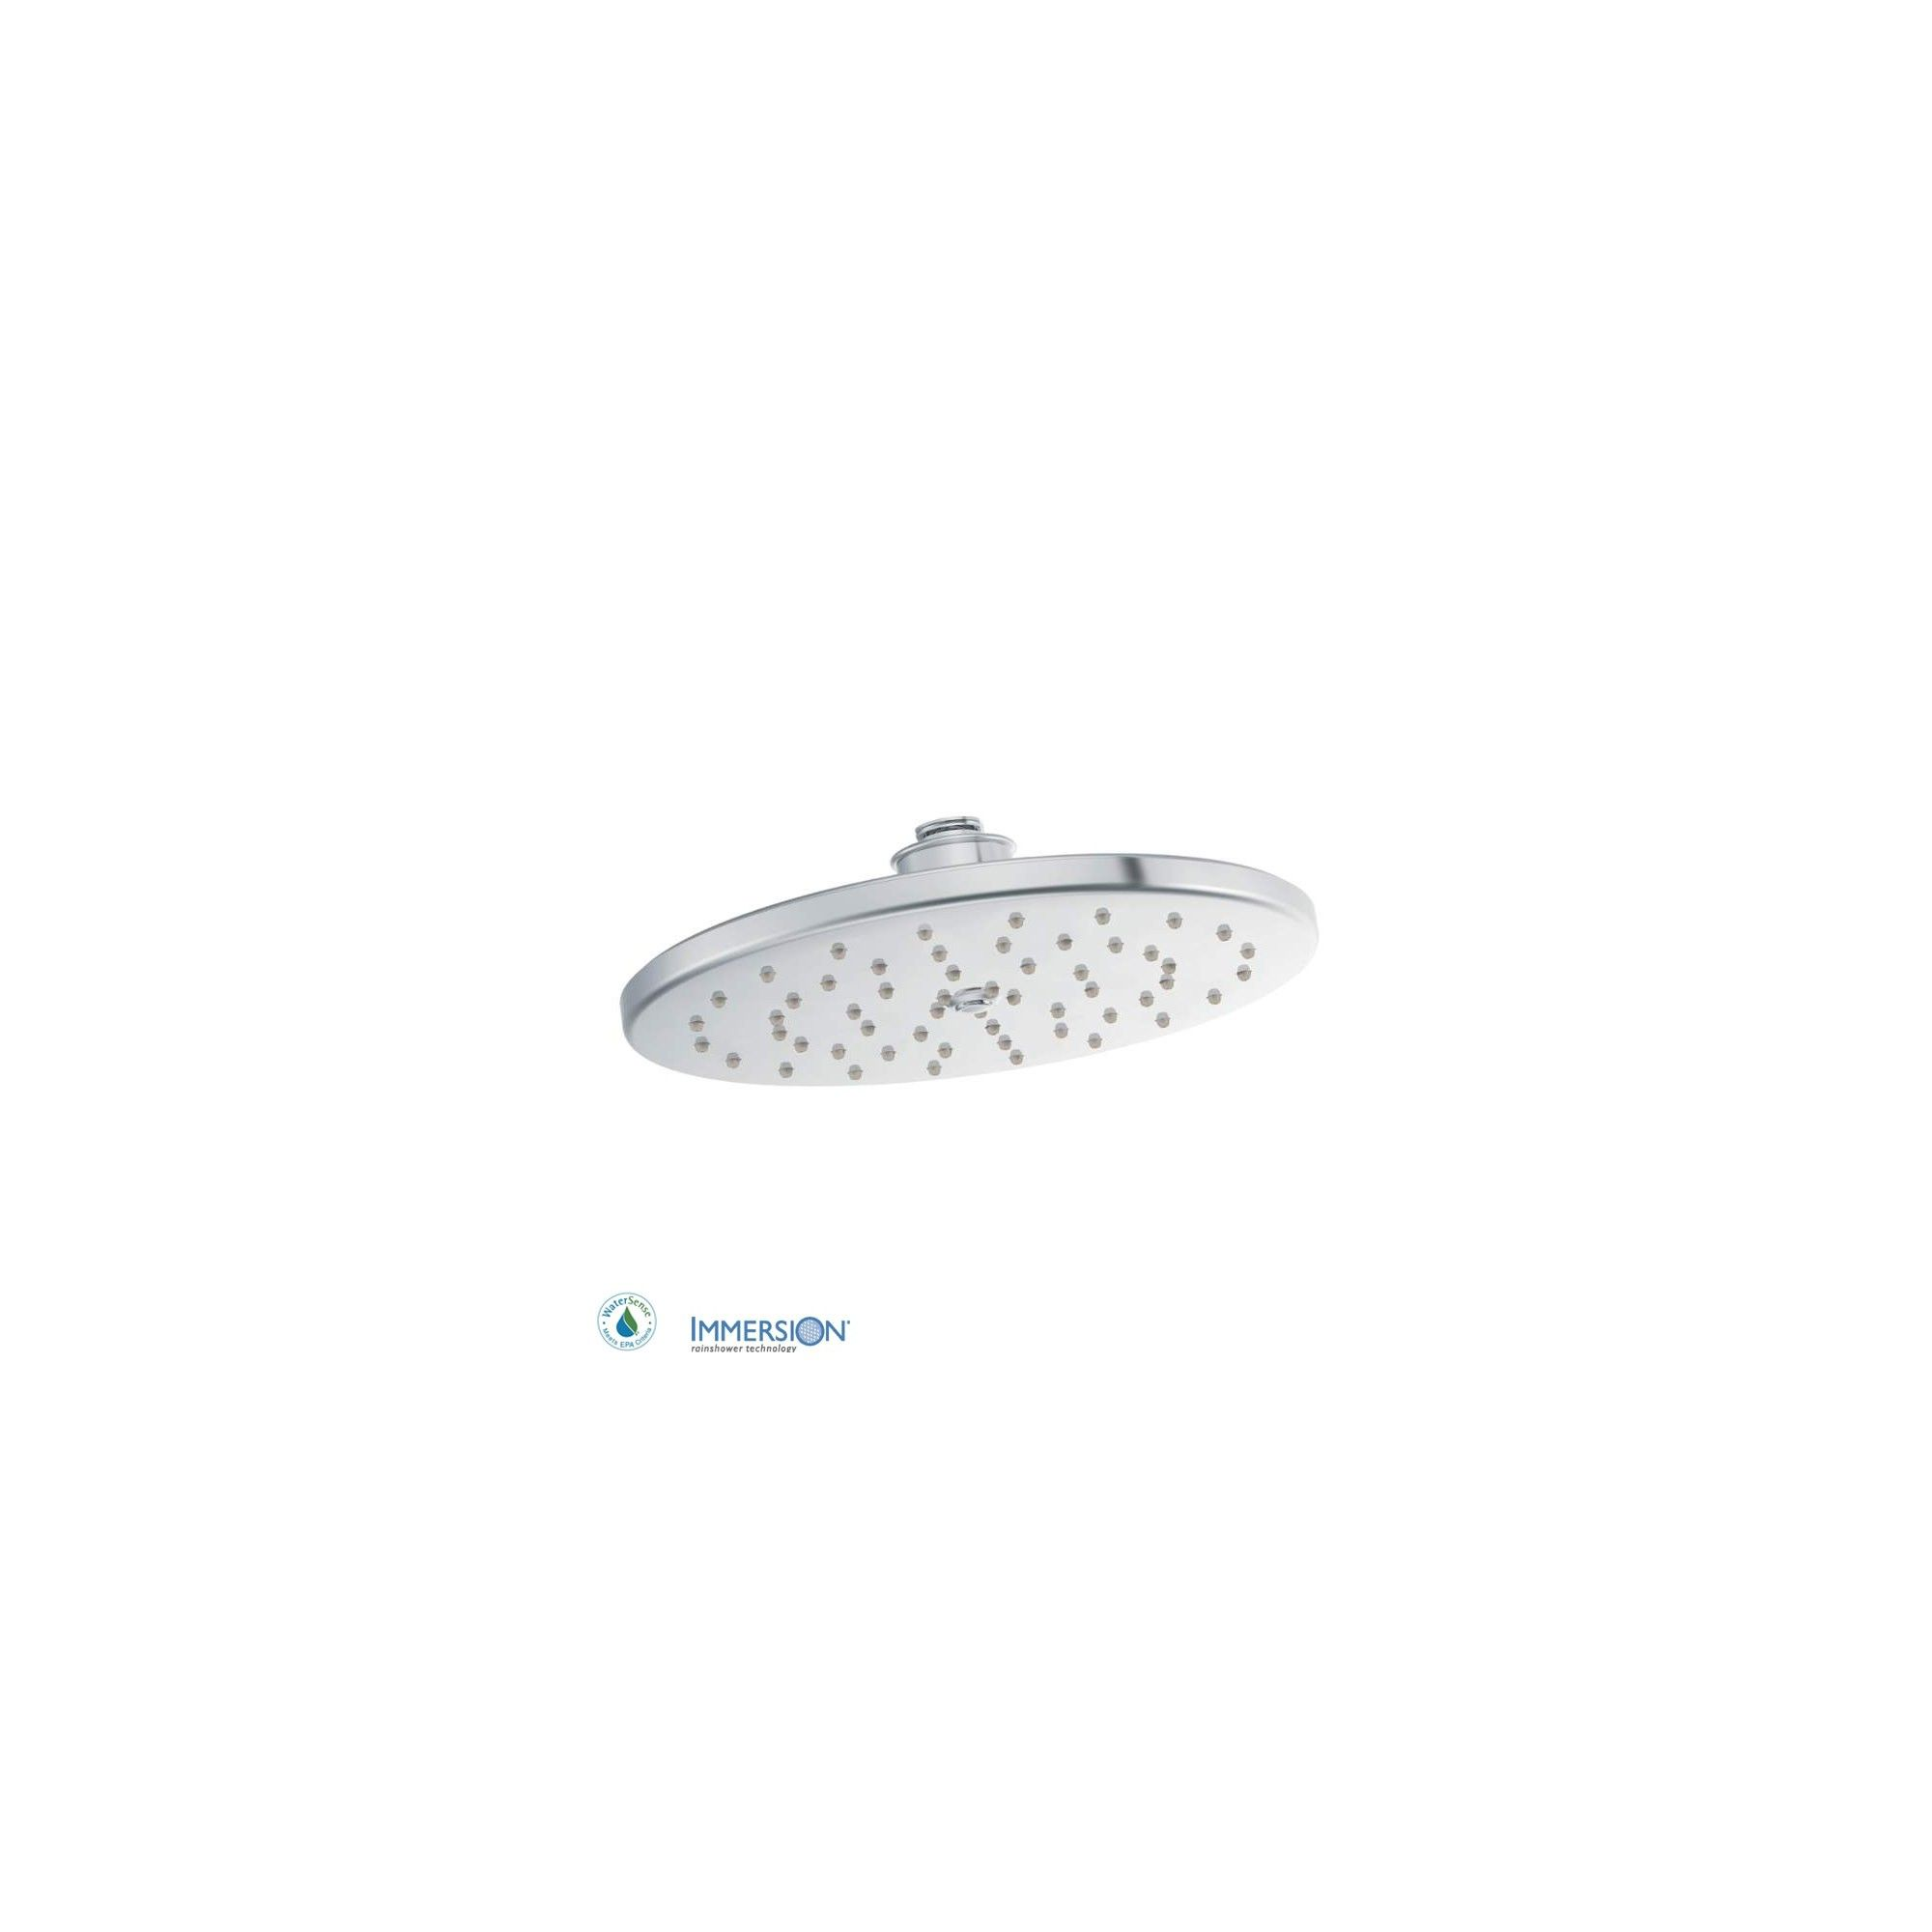 Moen S112ep 10 Rainshower Shower Head With 1 75 Gpm Flow Rate